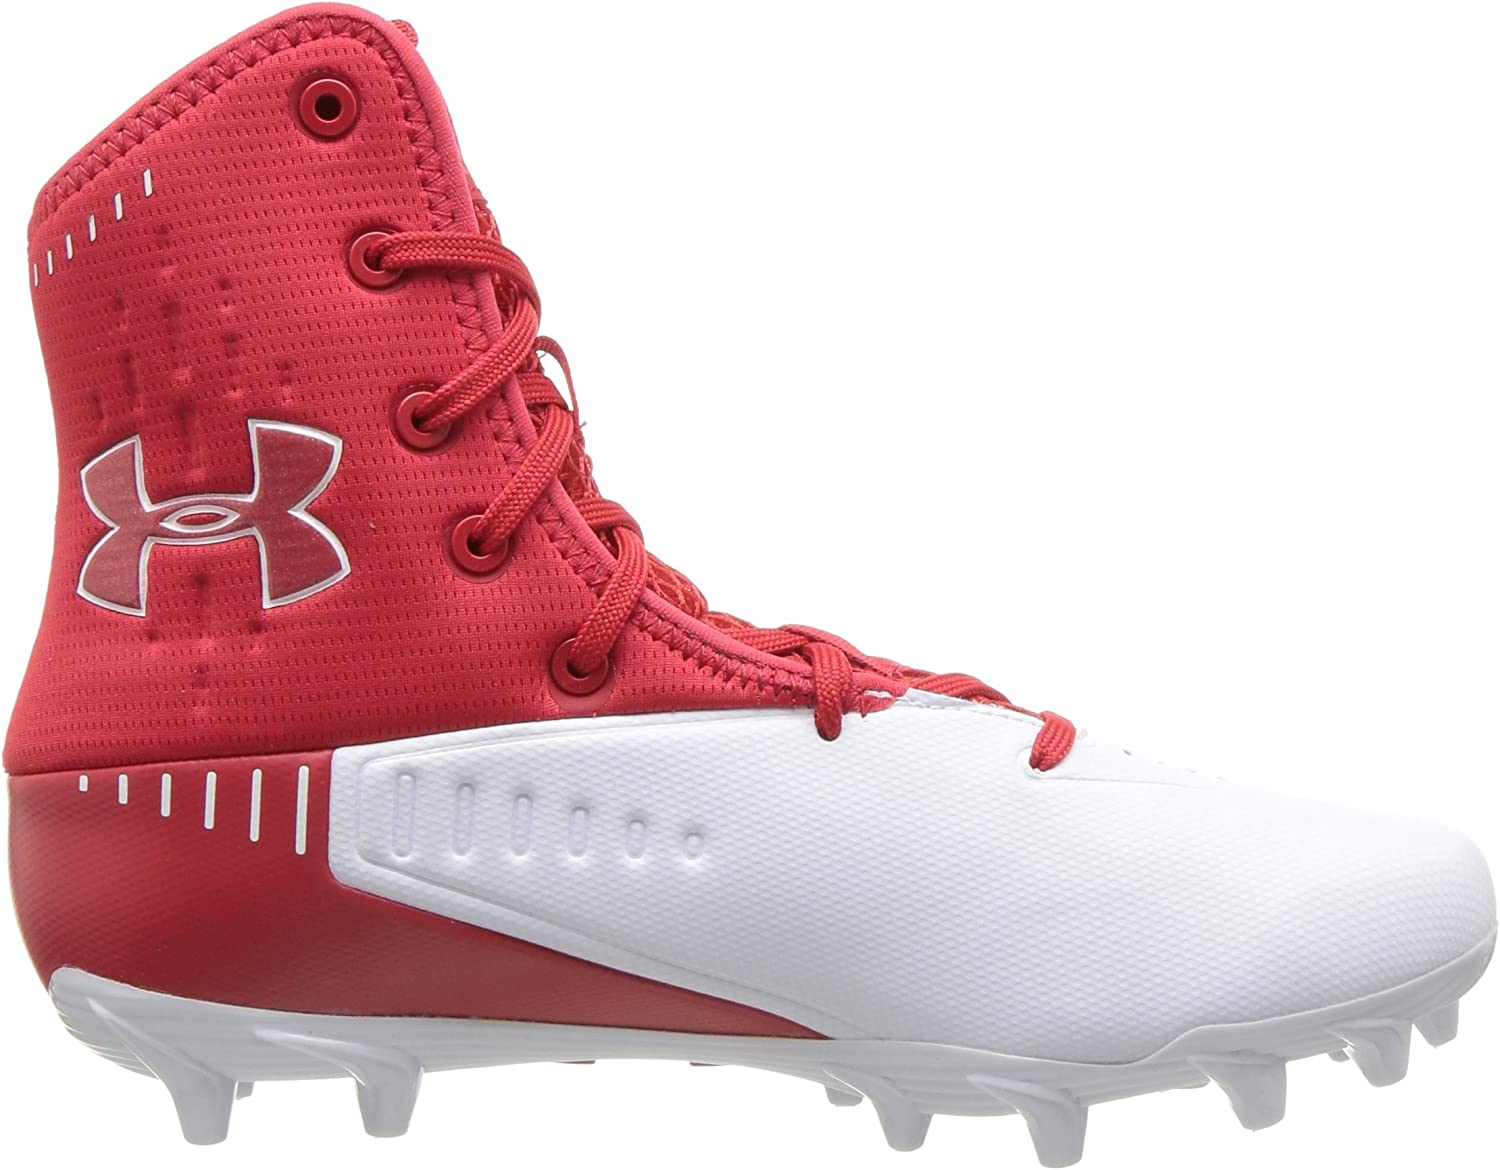 8.5M Under Armour Mens Highlight Select Mc Red High-Top Football Shoe